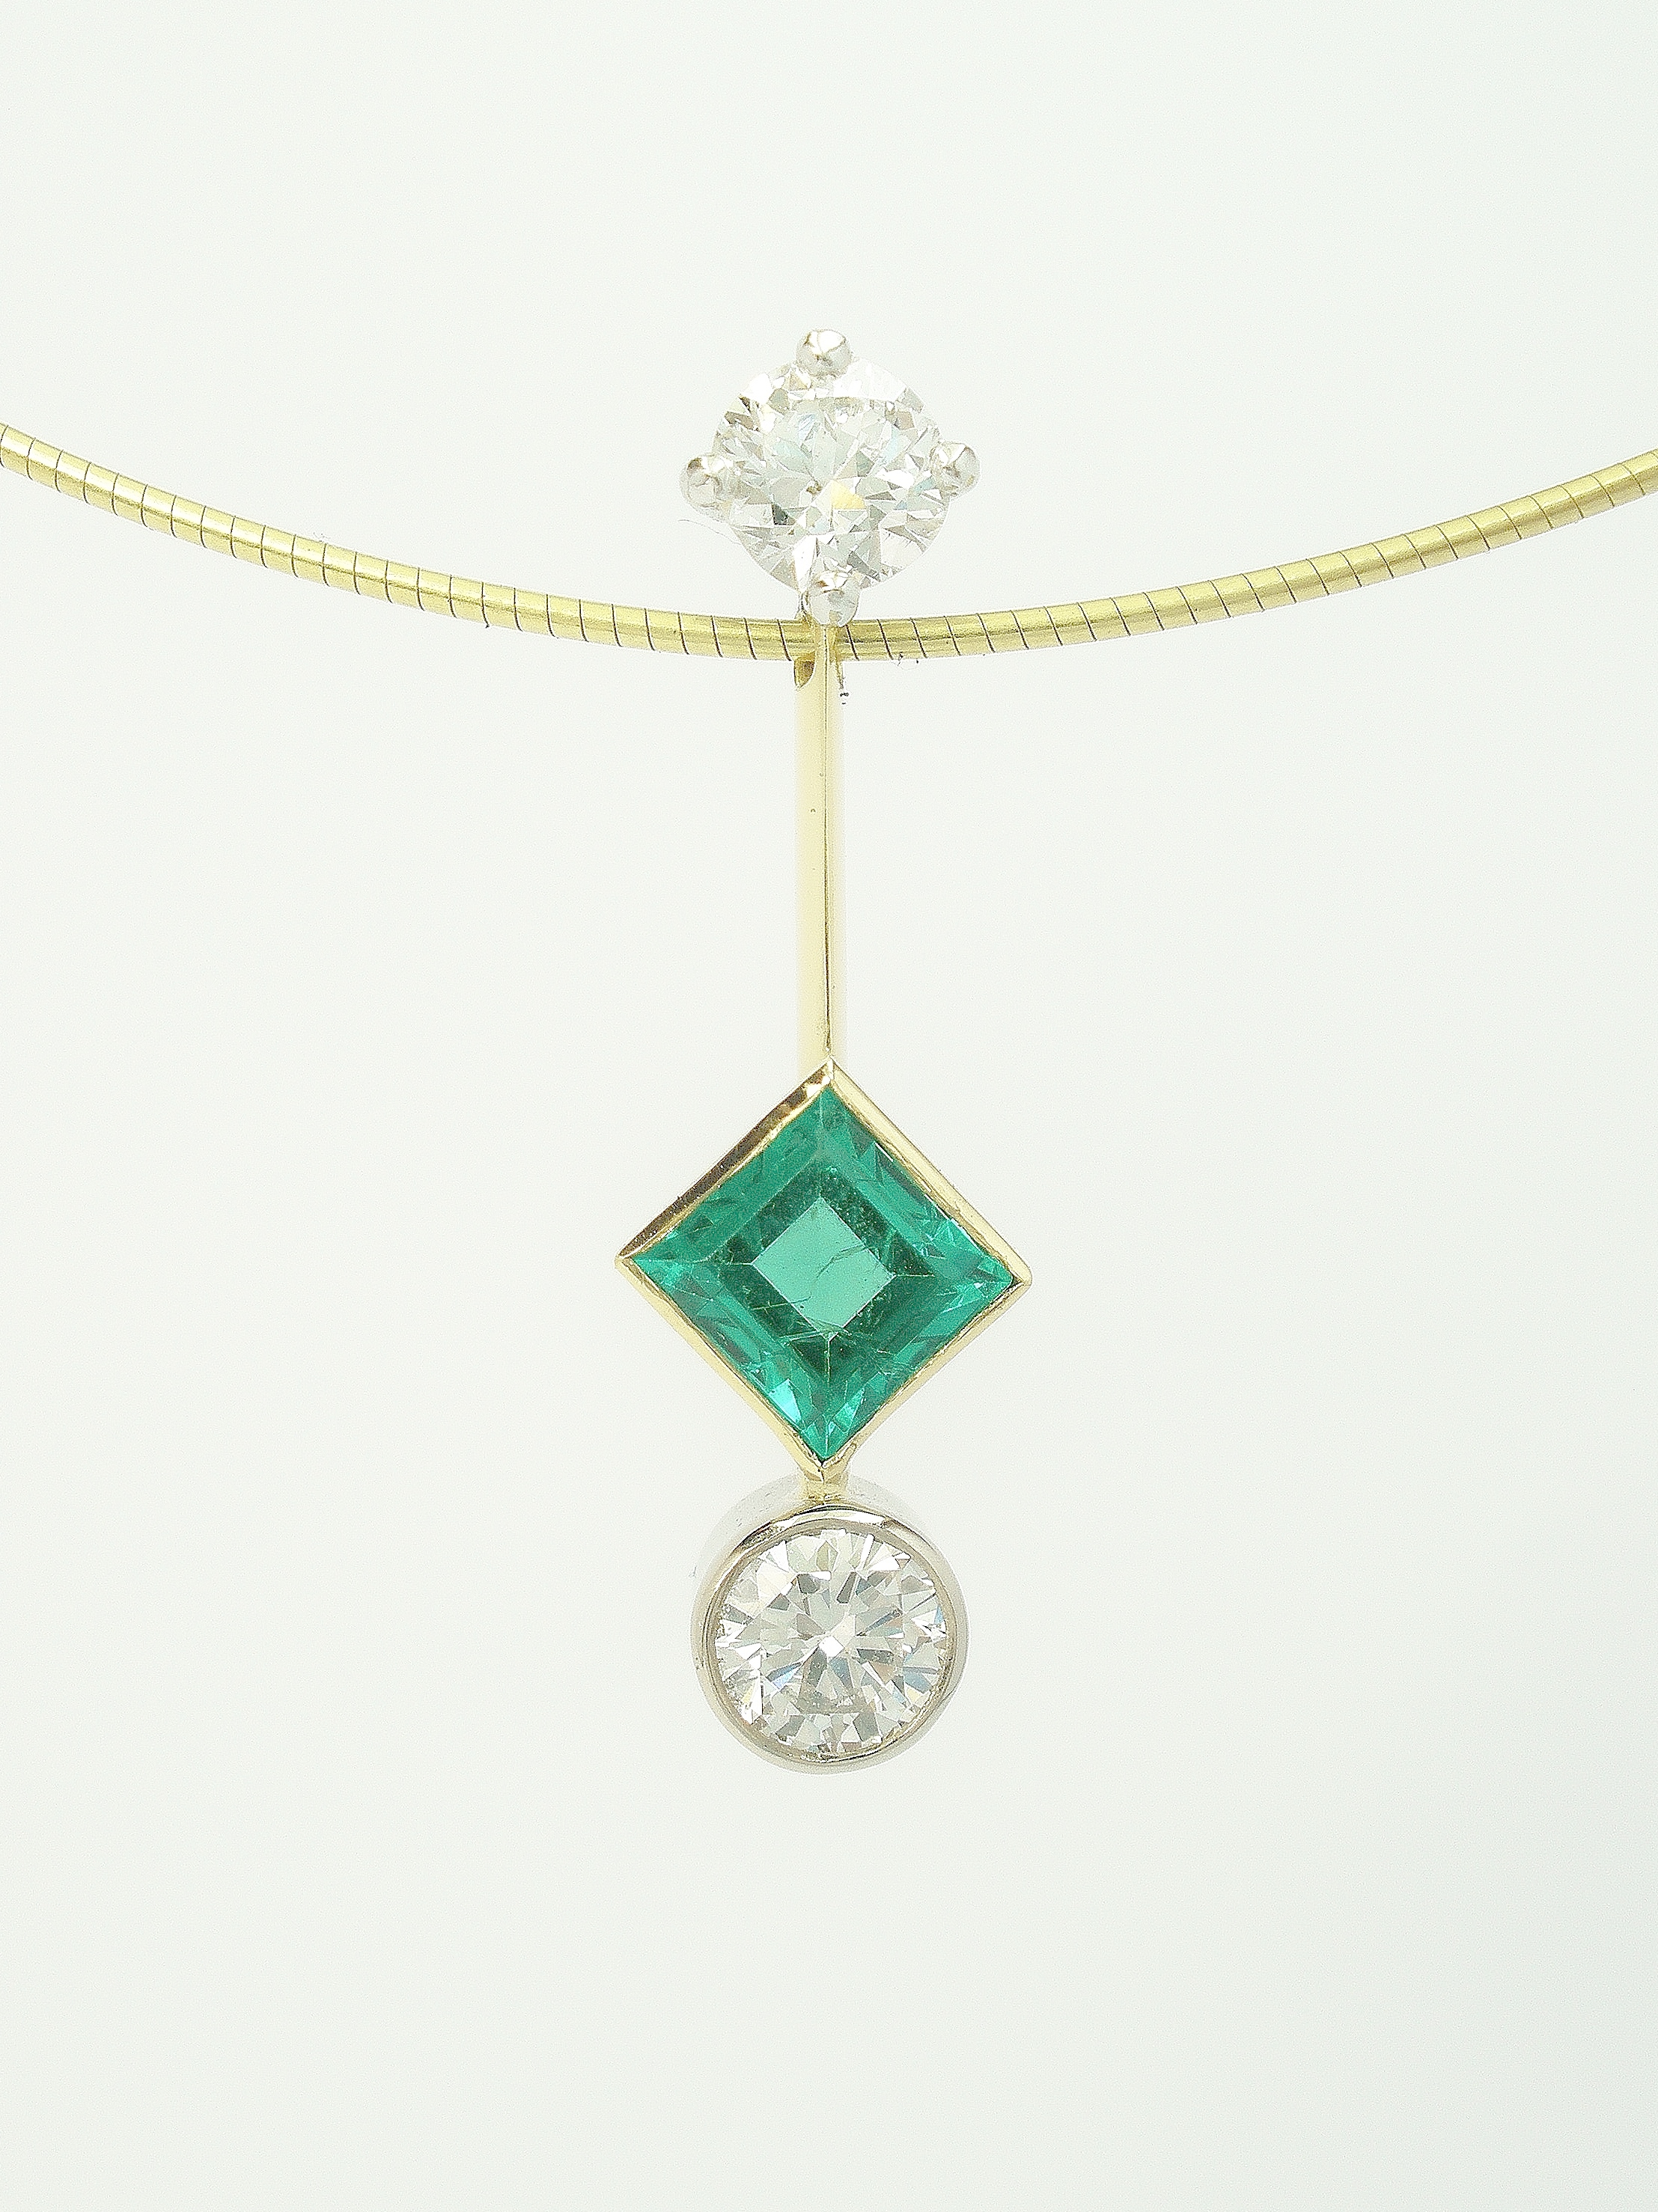 Square cut emerald and round brilliant cut diamond platinum & 18ct. yellow gold 3 stone pendulum style pendant.